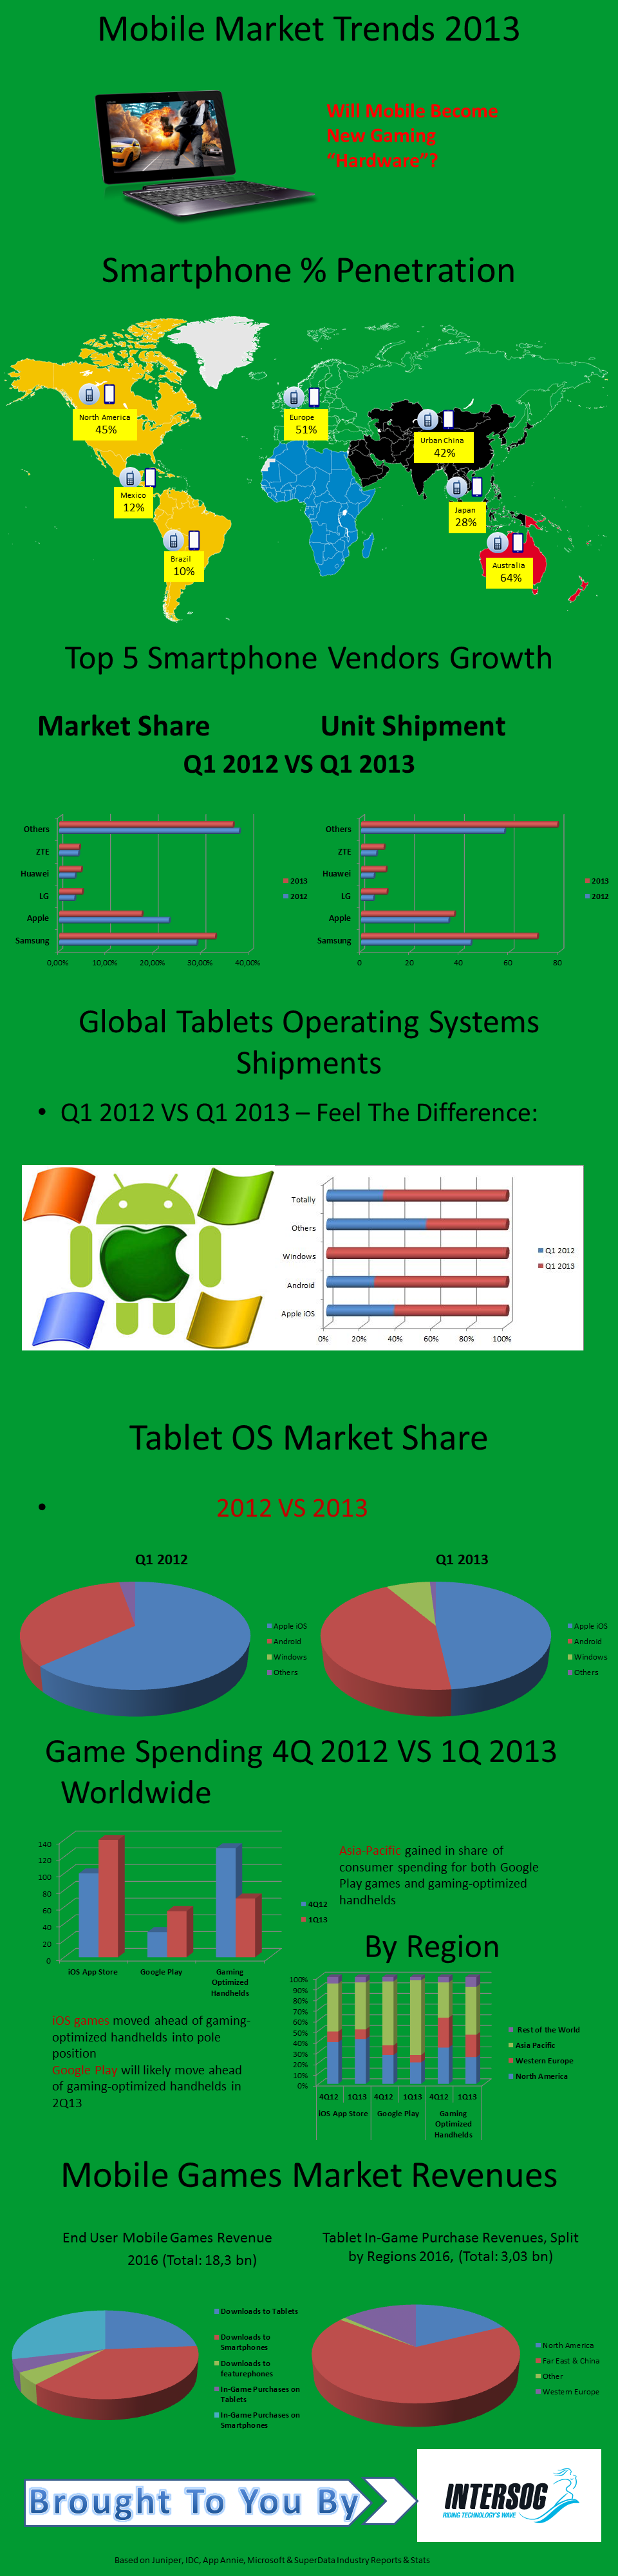 mobile gaming trends 2013